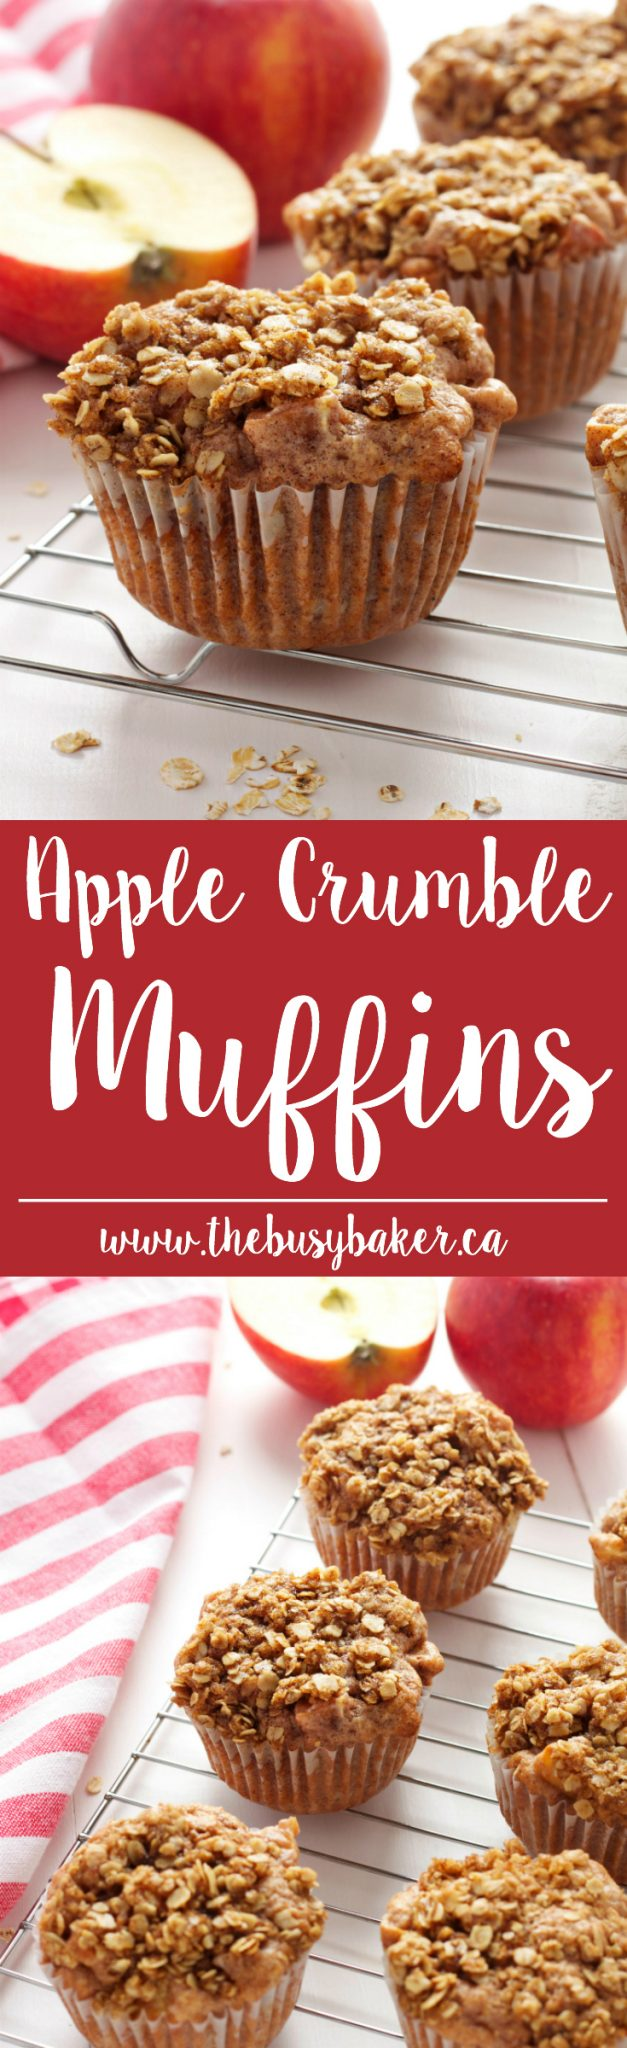 These Apple Crumble Muffins are delicious dessert-inspired muffins made with fresh apples and a delicious crumble topping! Recipe from thebusybaker.ca! via @busybakerblog